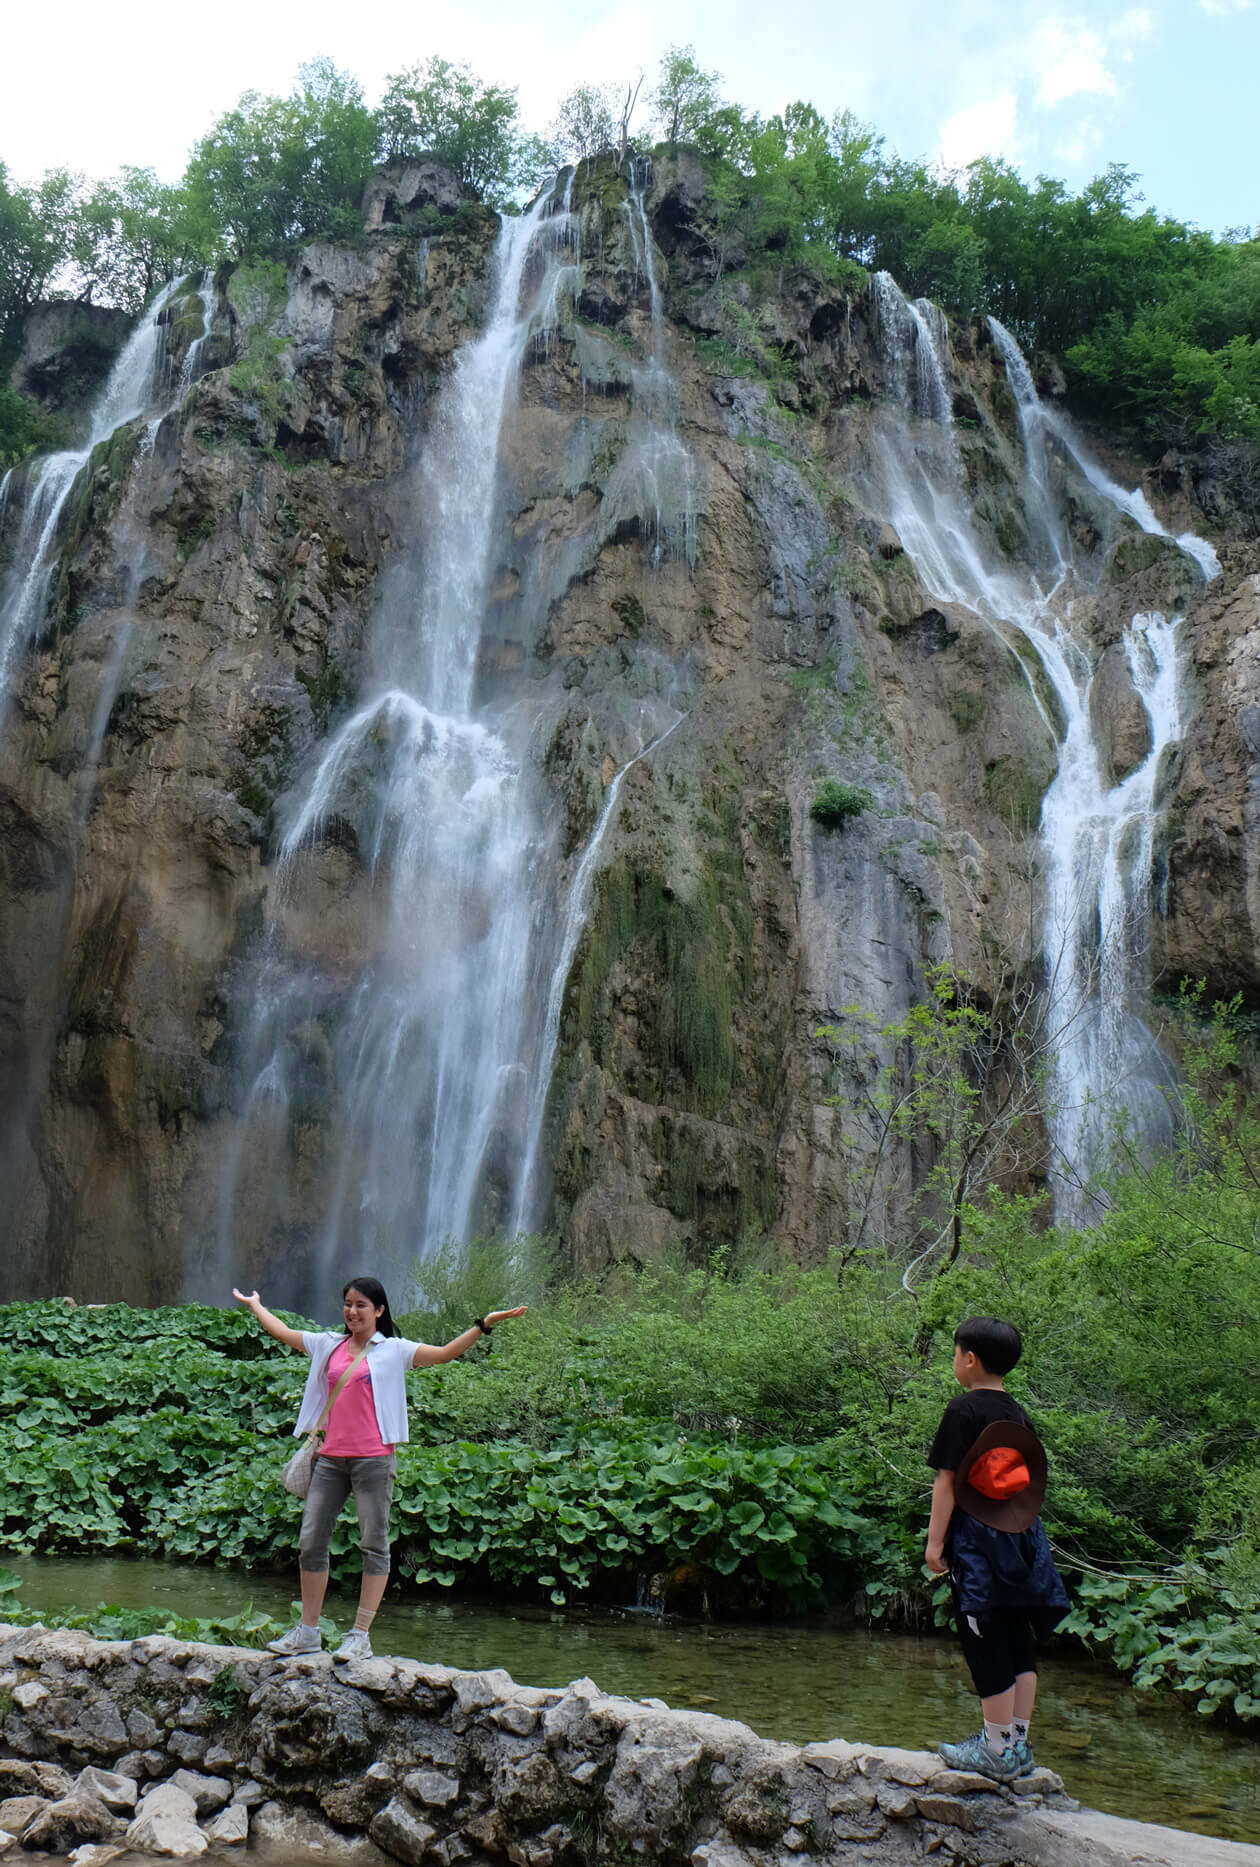 The Big Waterfall at the Plitvice Lakes